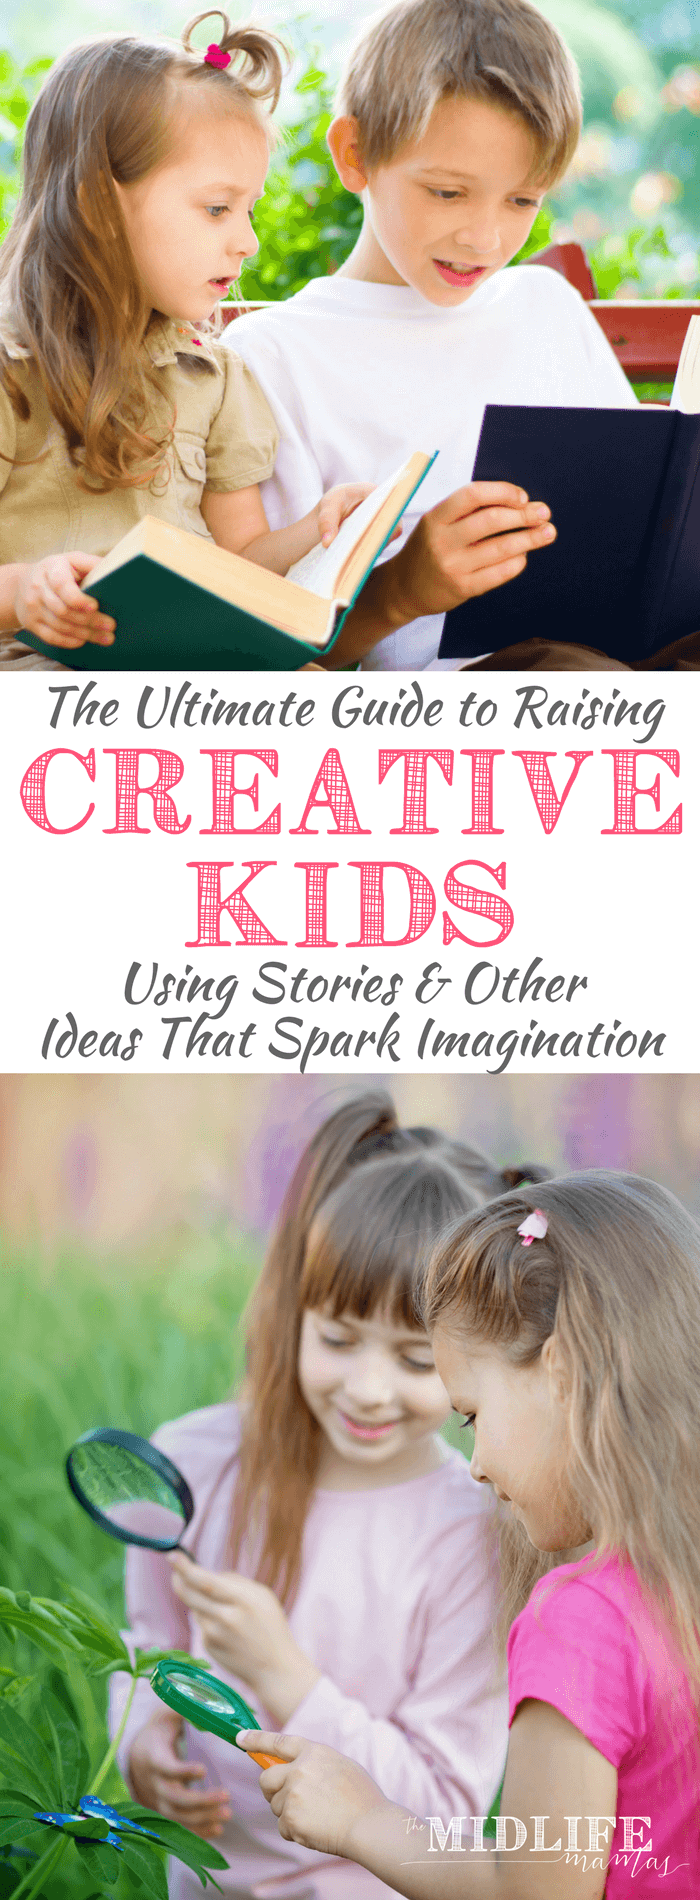 Nurturing creativity in kids with ideas, activities, and stories for kids that spark their imaginations is one of my most satisfying jobs as a mom. This is a great list of ideas to start with! #creativity #kids www.themidlifemamas.com